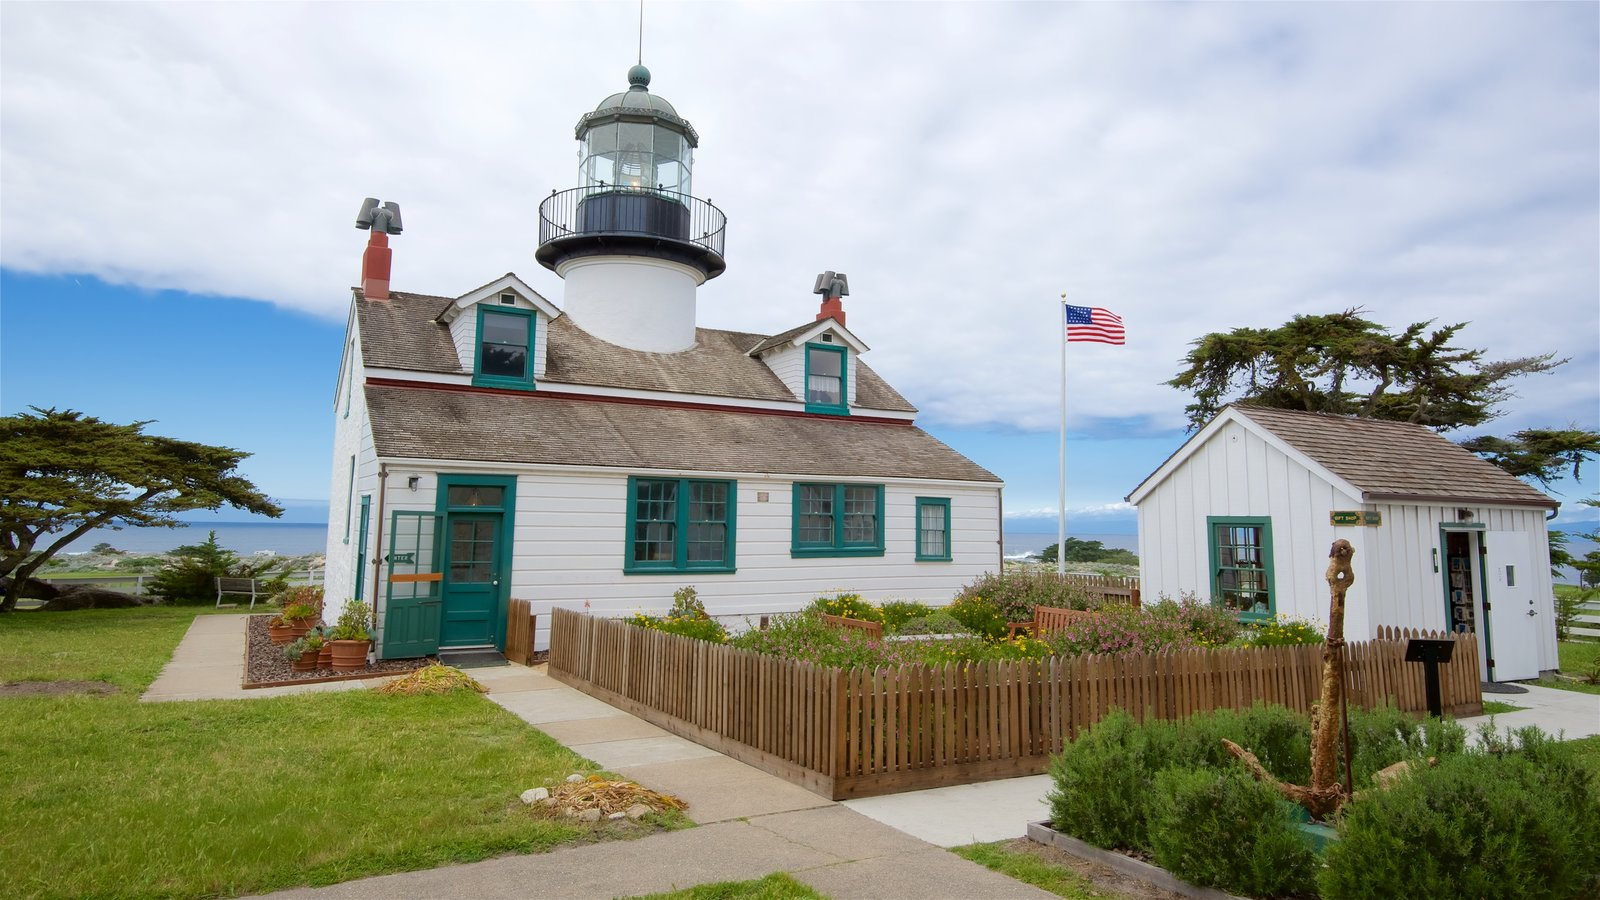 Point Pinos Lighthouse which includes general coastal views and a lighthouse